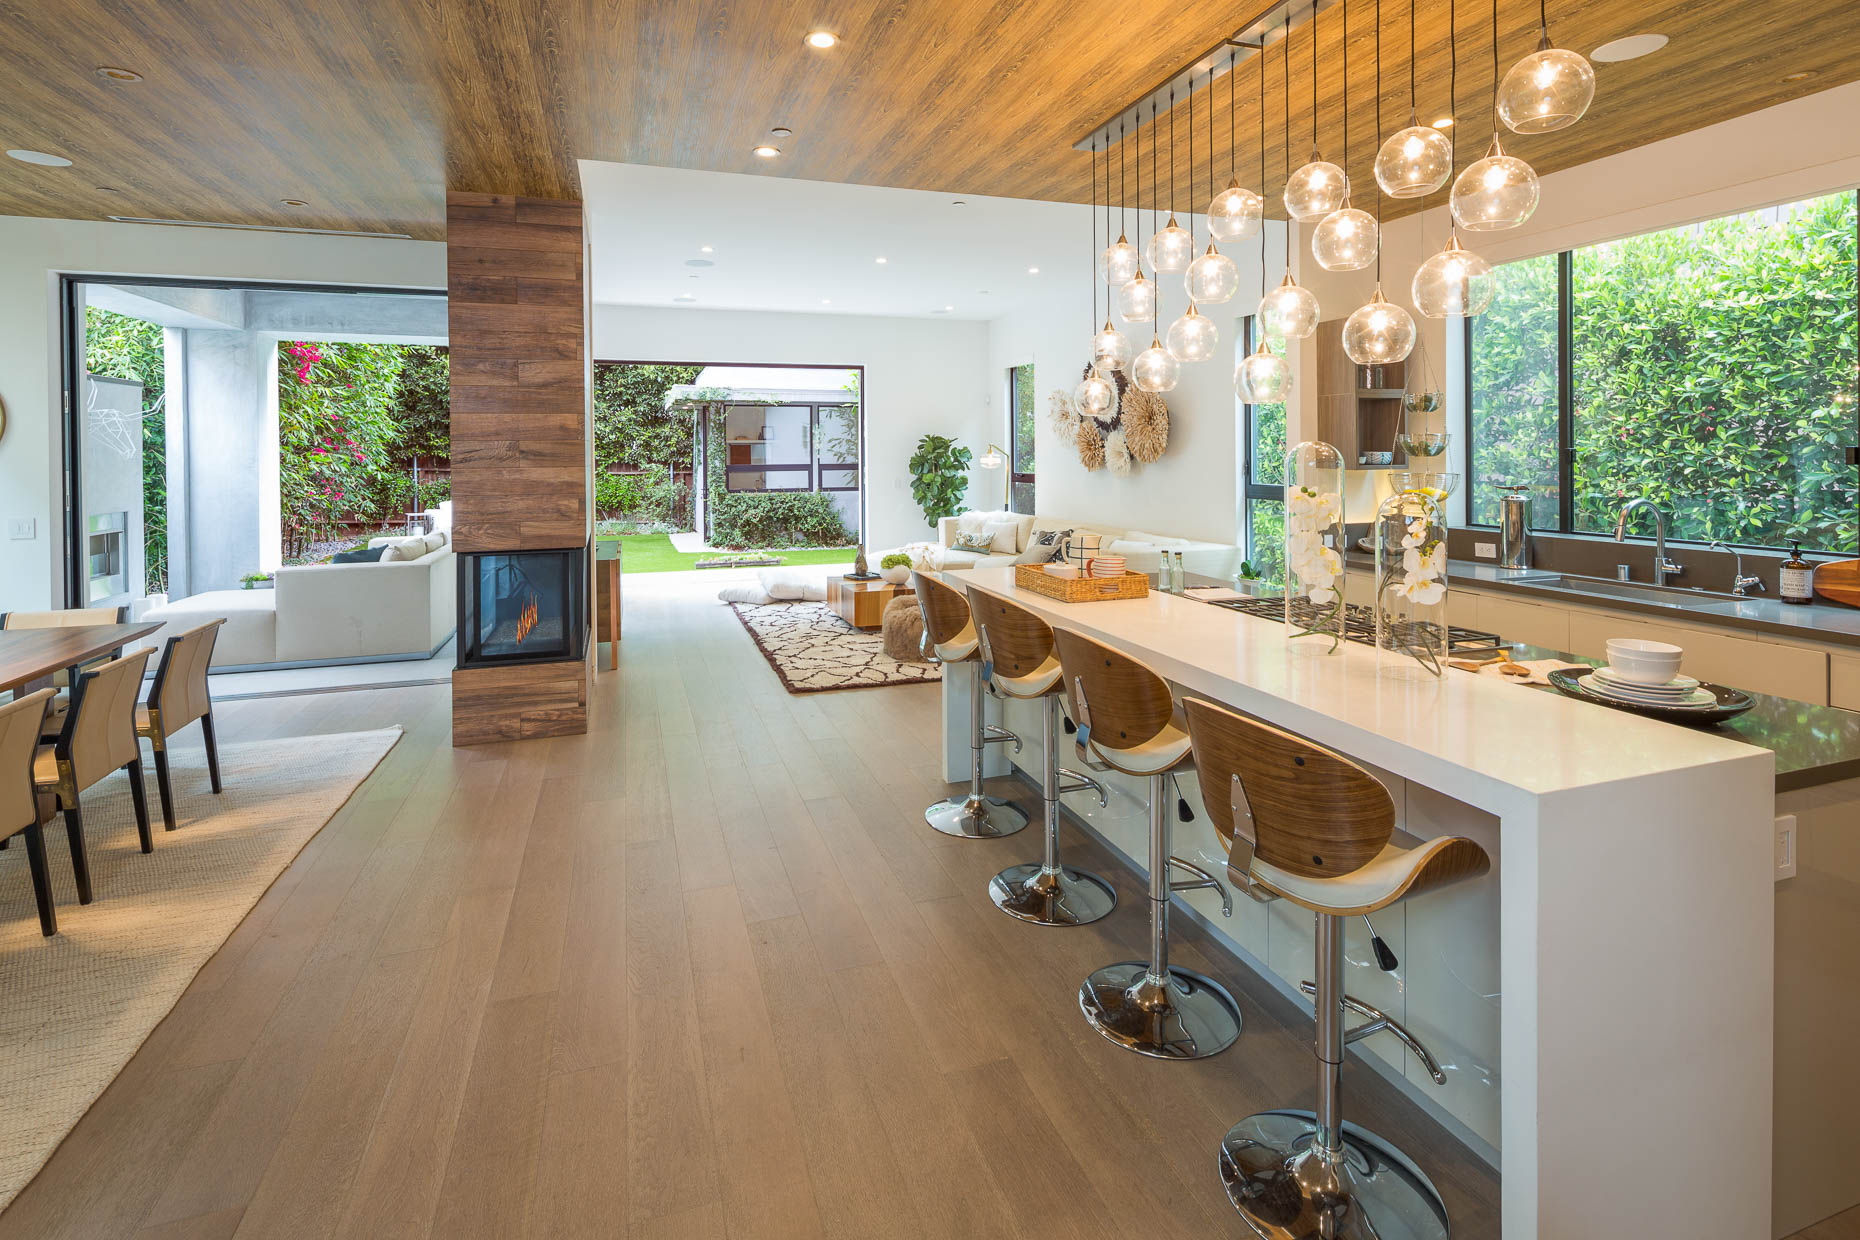 Architecture photograph of kitchen and great room in upscale residence in Los Angeles, California by David Zaitz